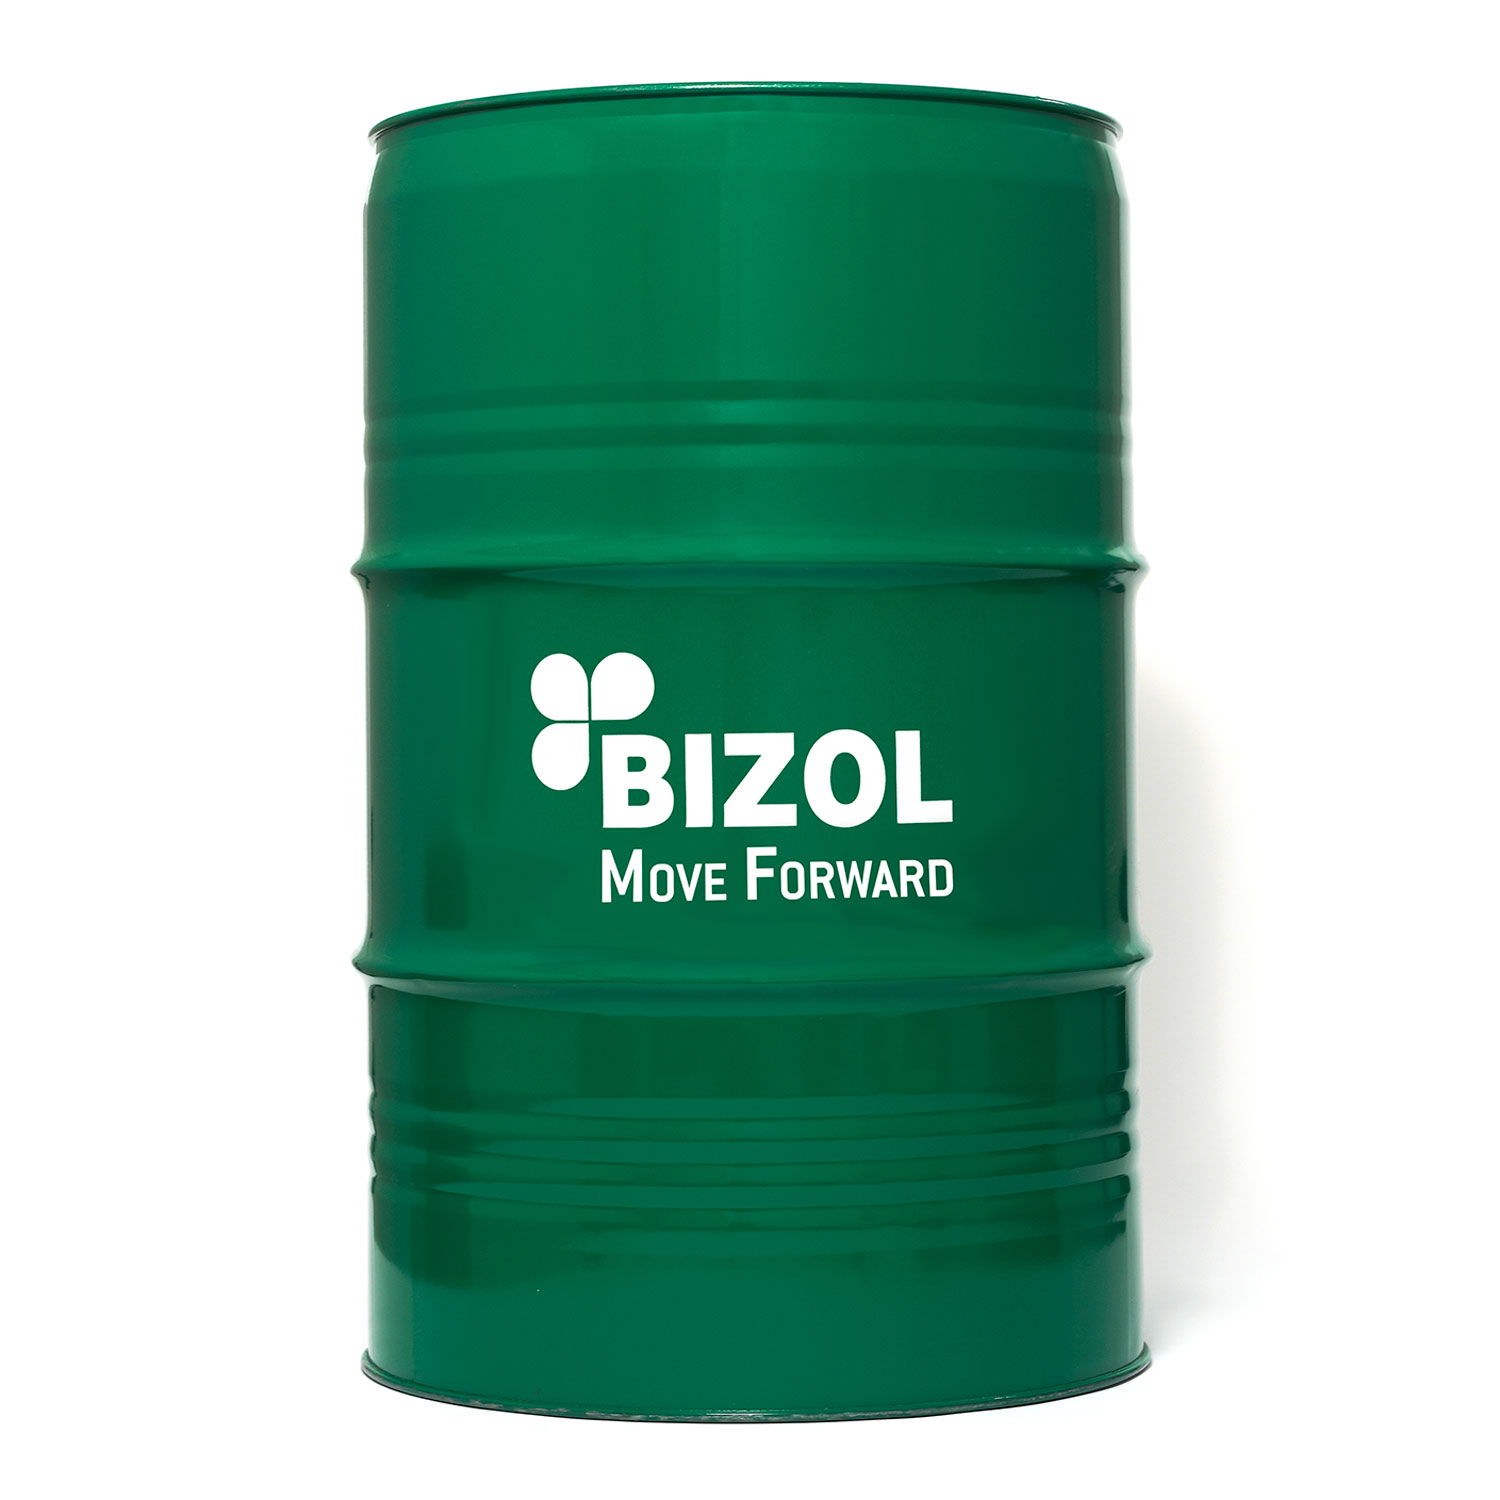 Gear Oil - for allmost all requierements of comercial vehicles